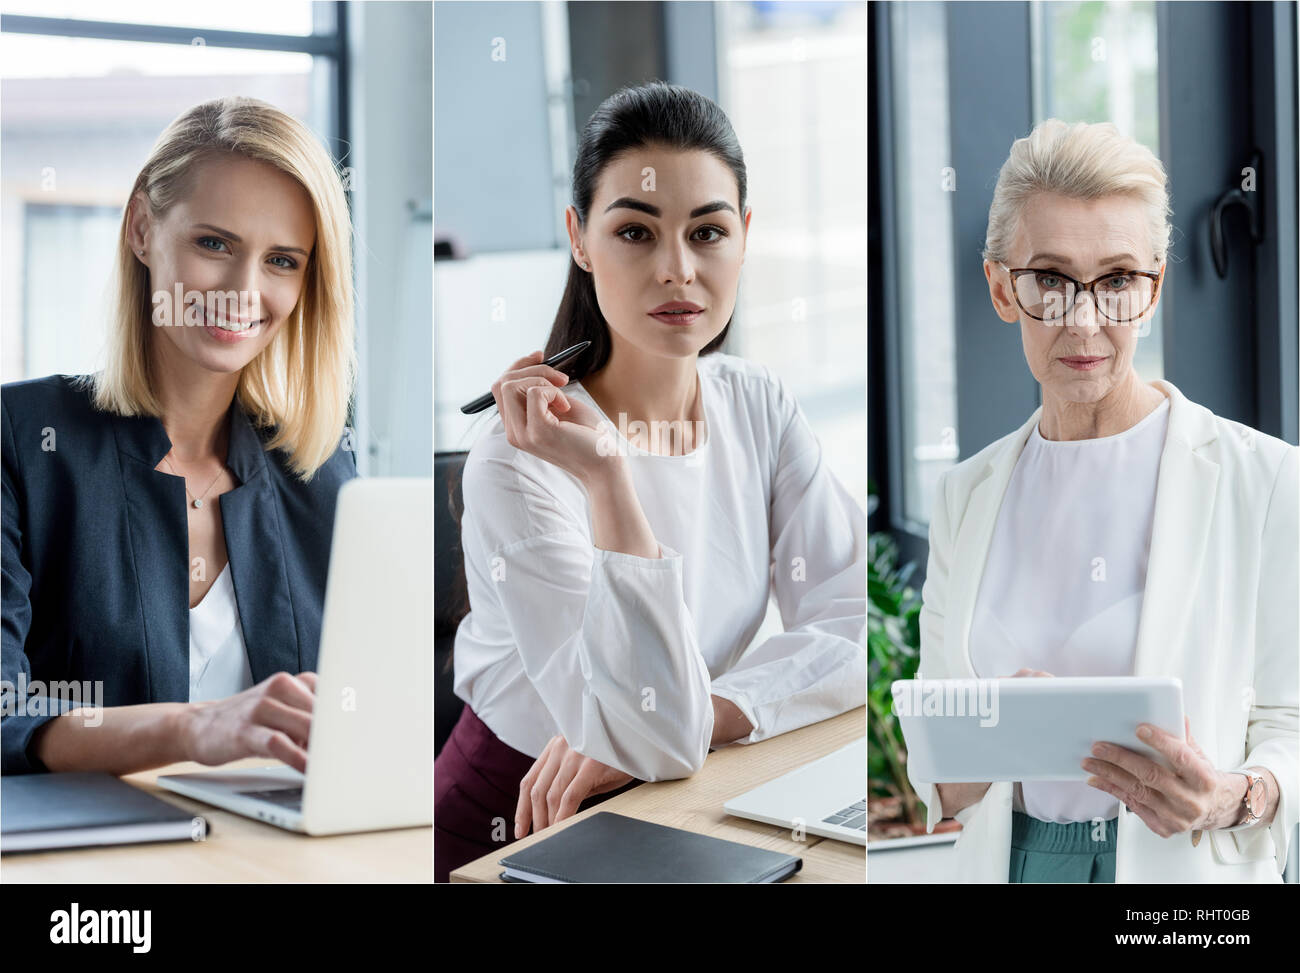 collage of different age businesswomen using gadgets at workplace in office - Stock Image